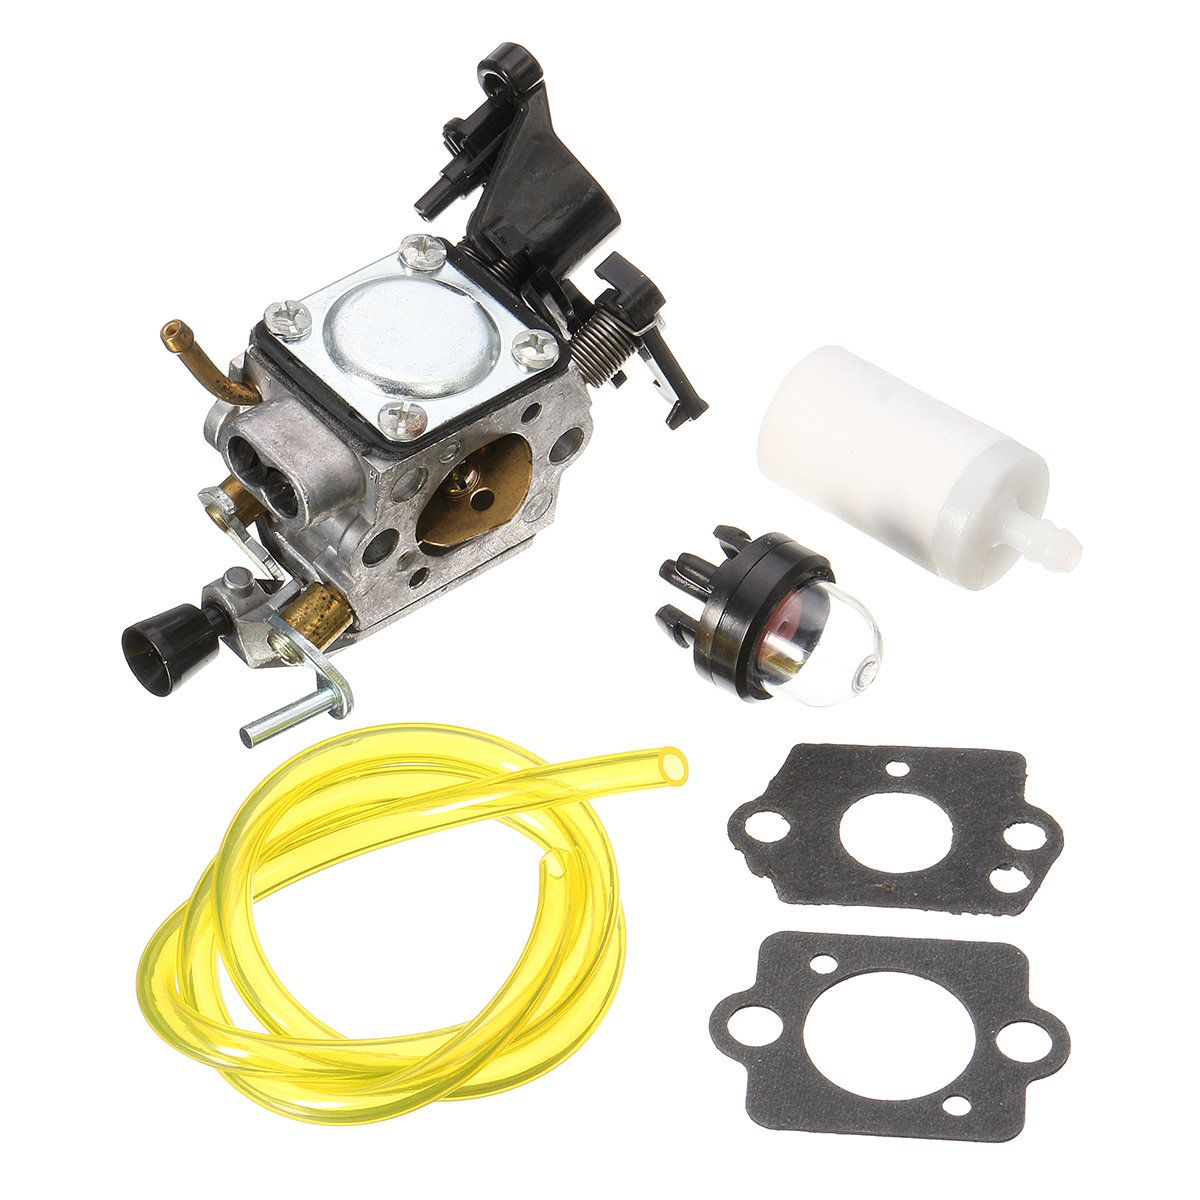 Us 15 85 Carburetor Carb For Husqvarna 445 450 Chain Saw